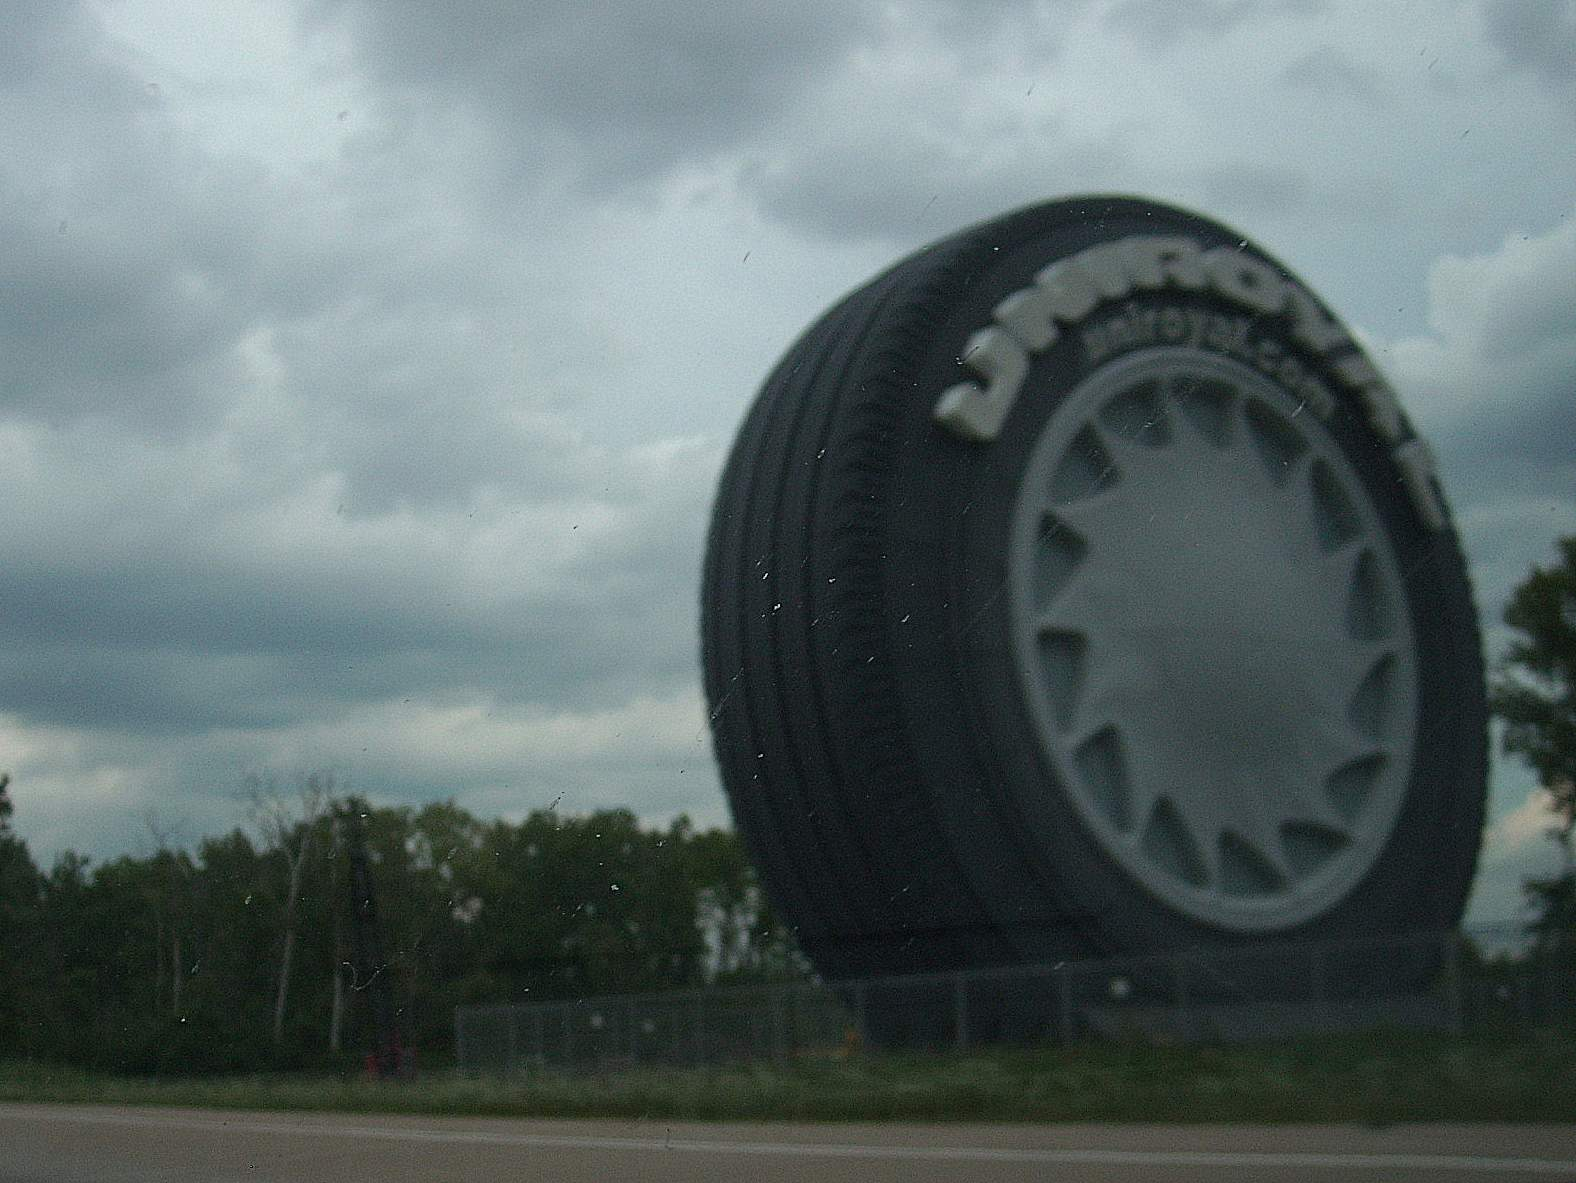 Make A Tire or Auto Repair Appointment Today